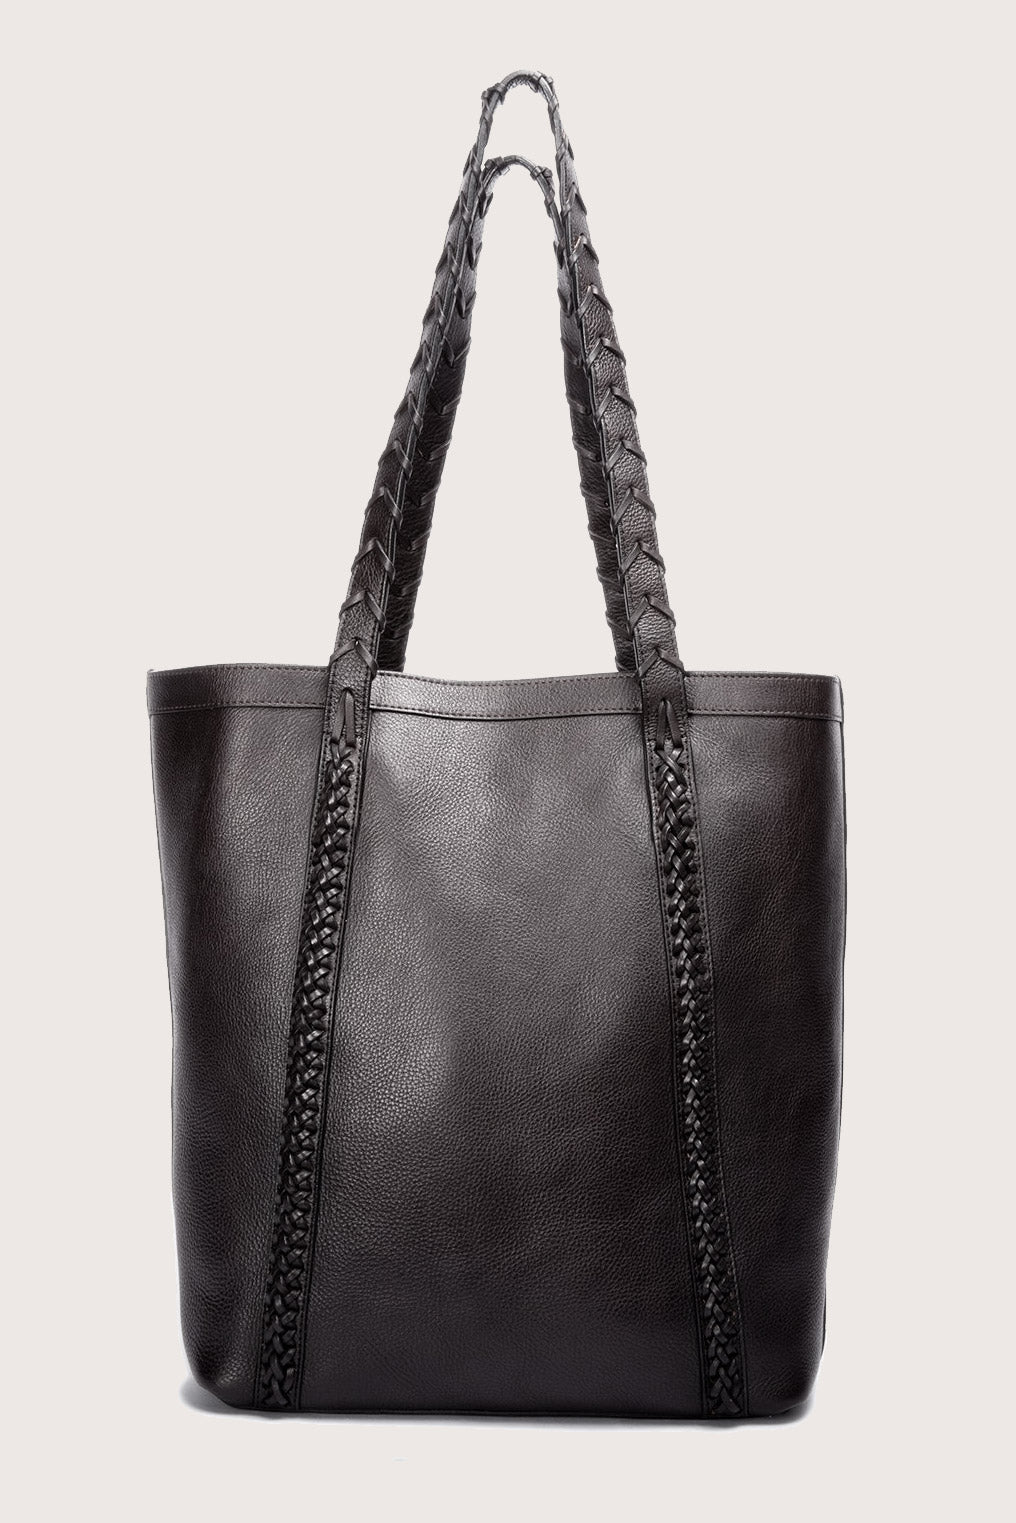 Braided Angle Tote in Black